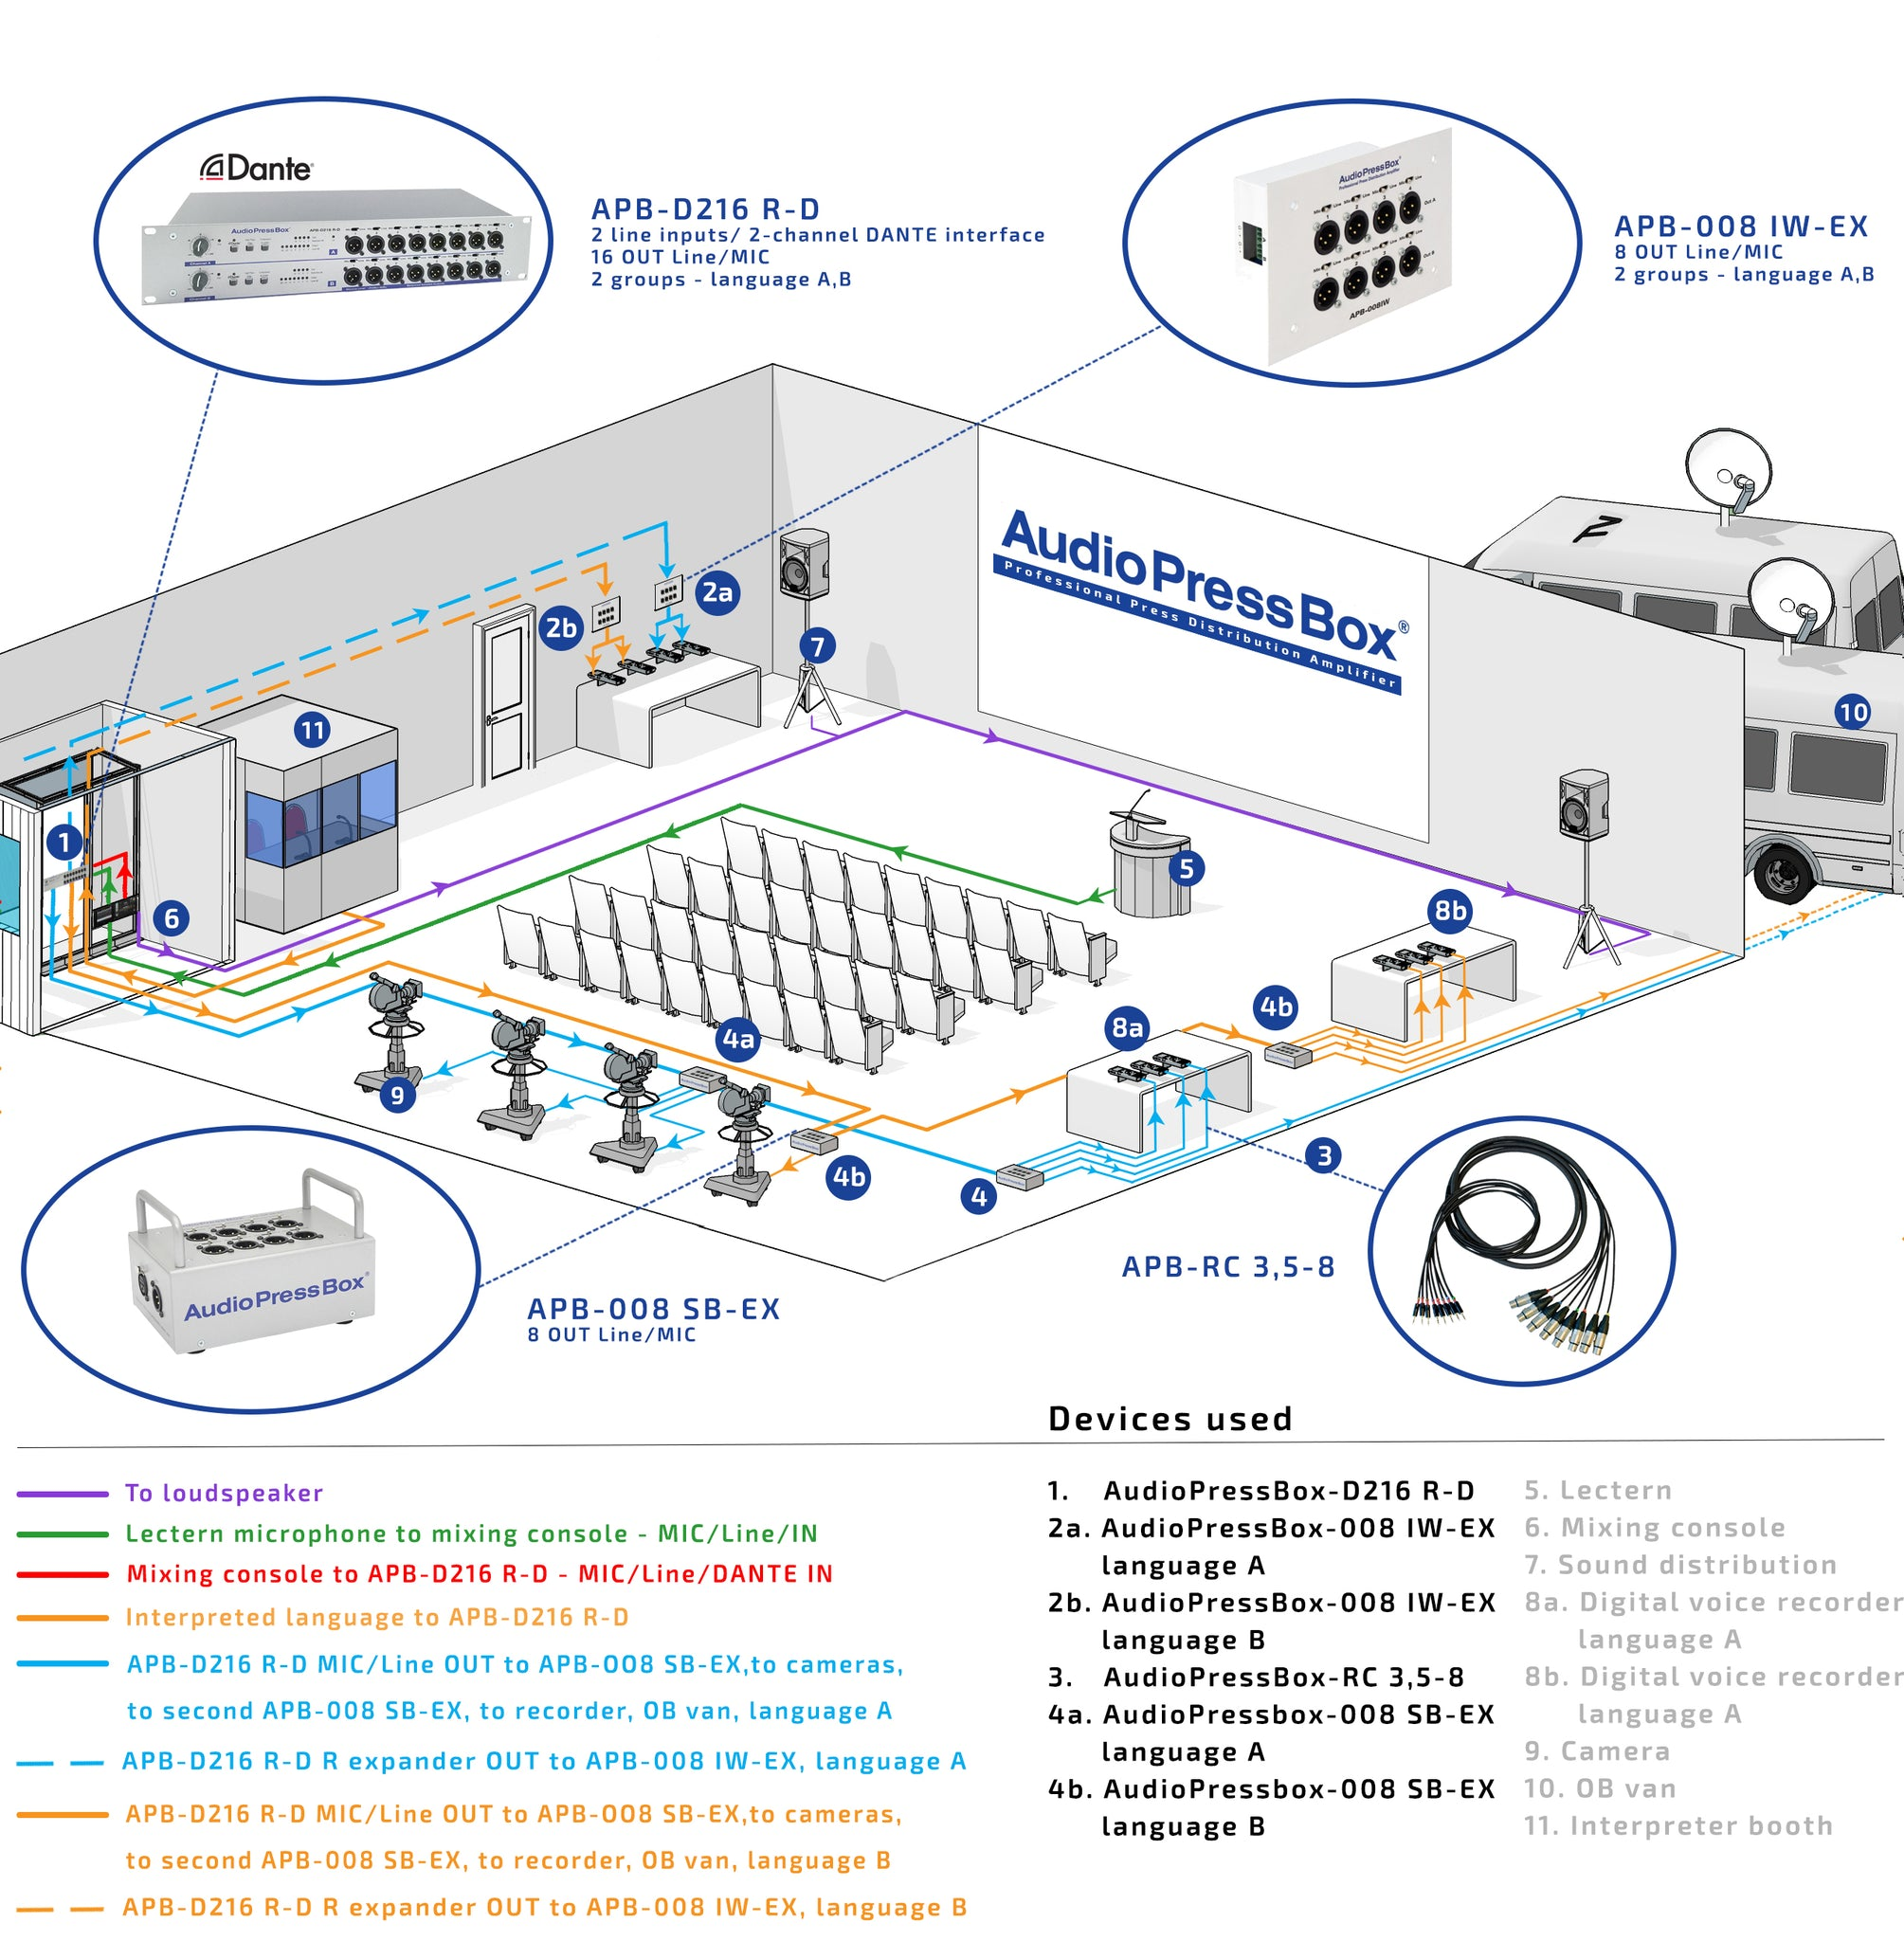 AudioPressBox, Mult Box, PressBox, Mult Box, Press Patch Box, Pressesplitter, APB-D216 R-D